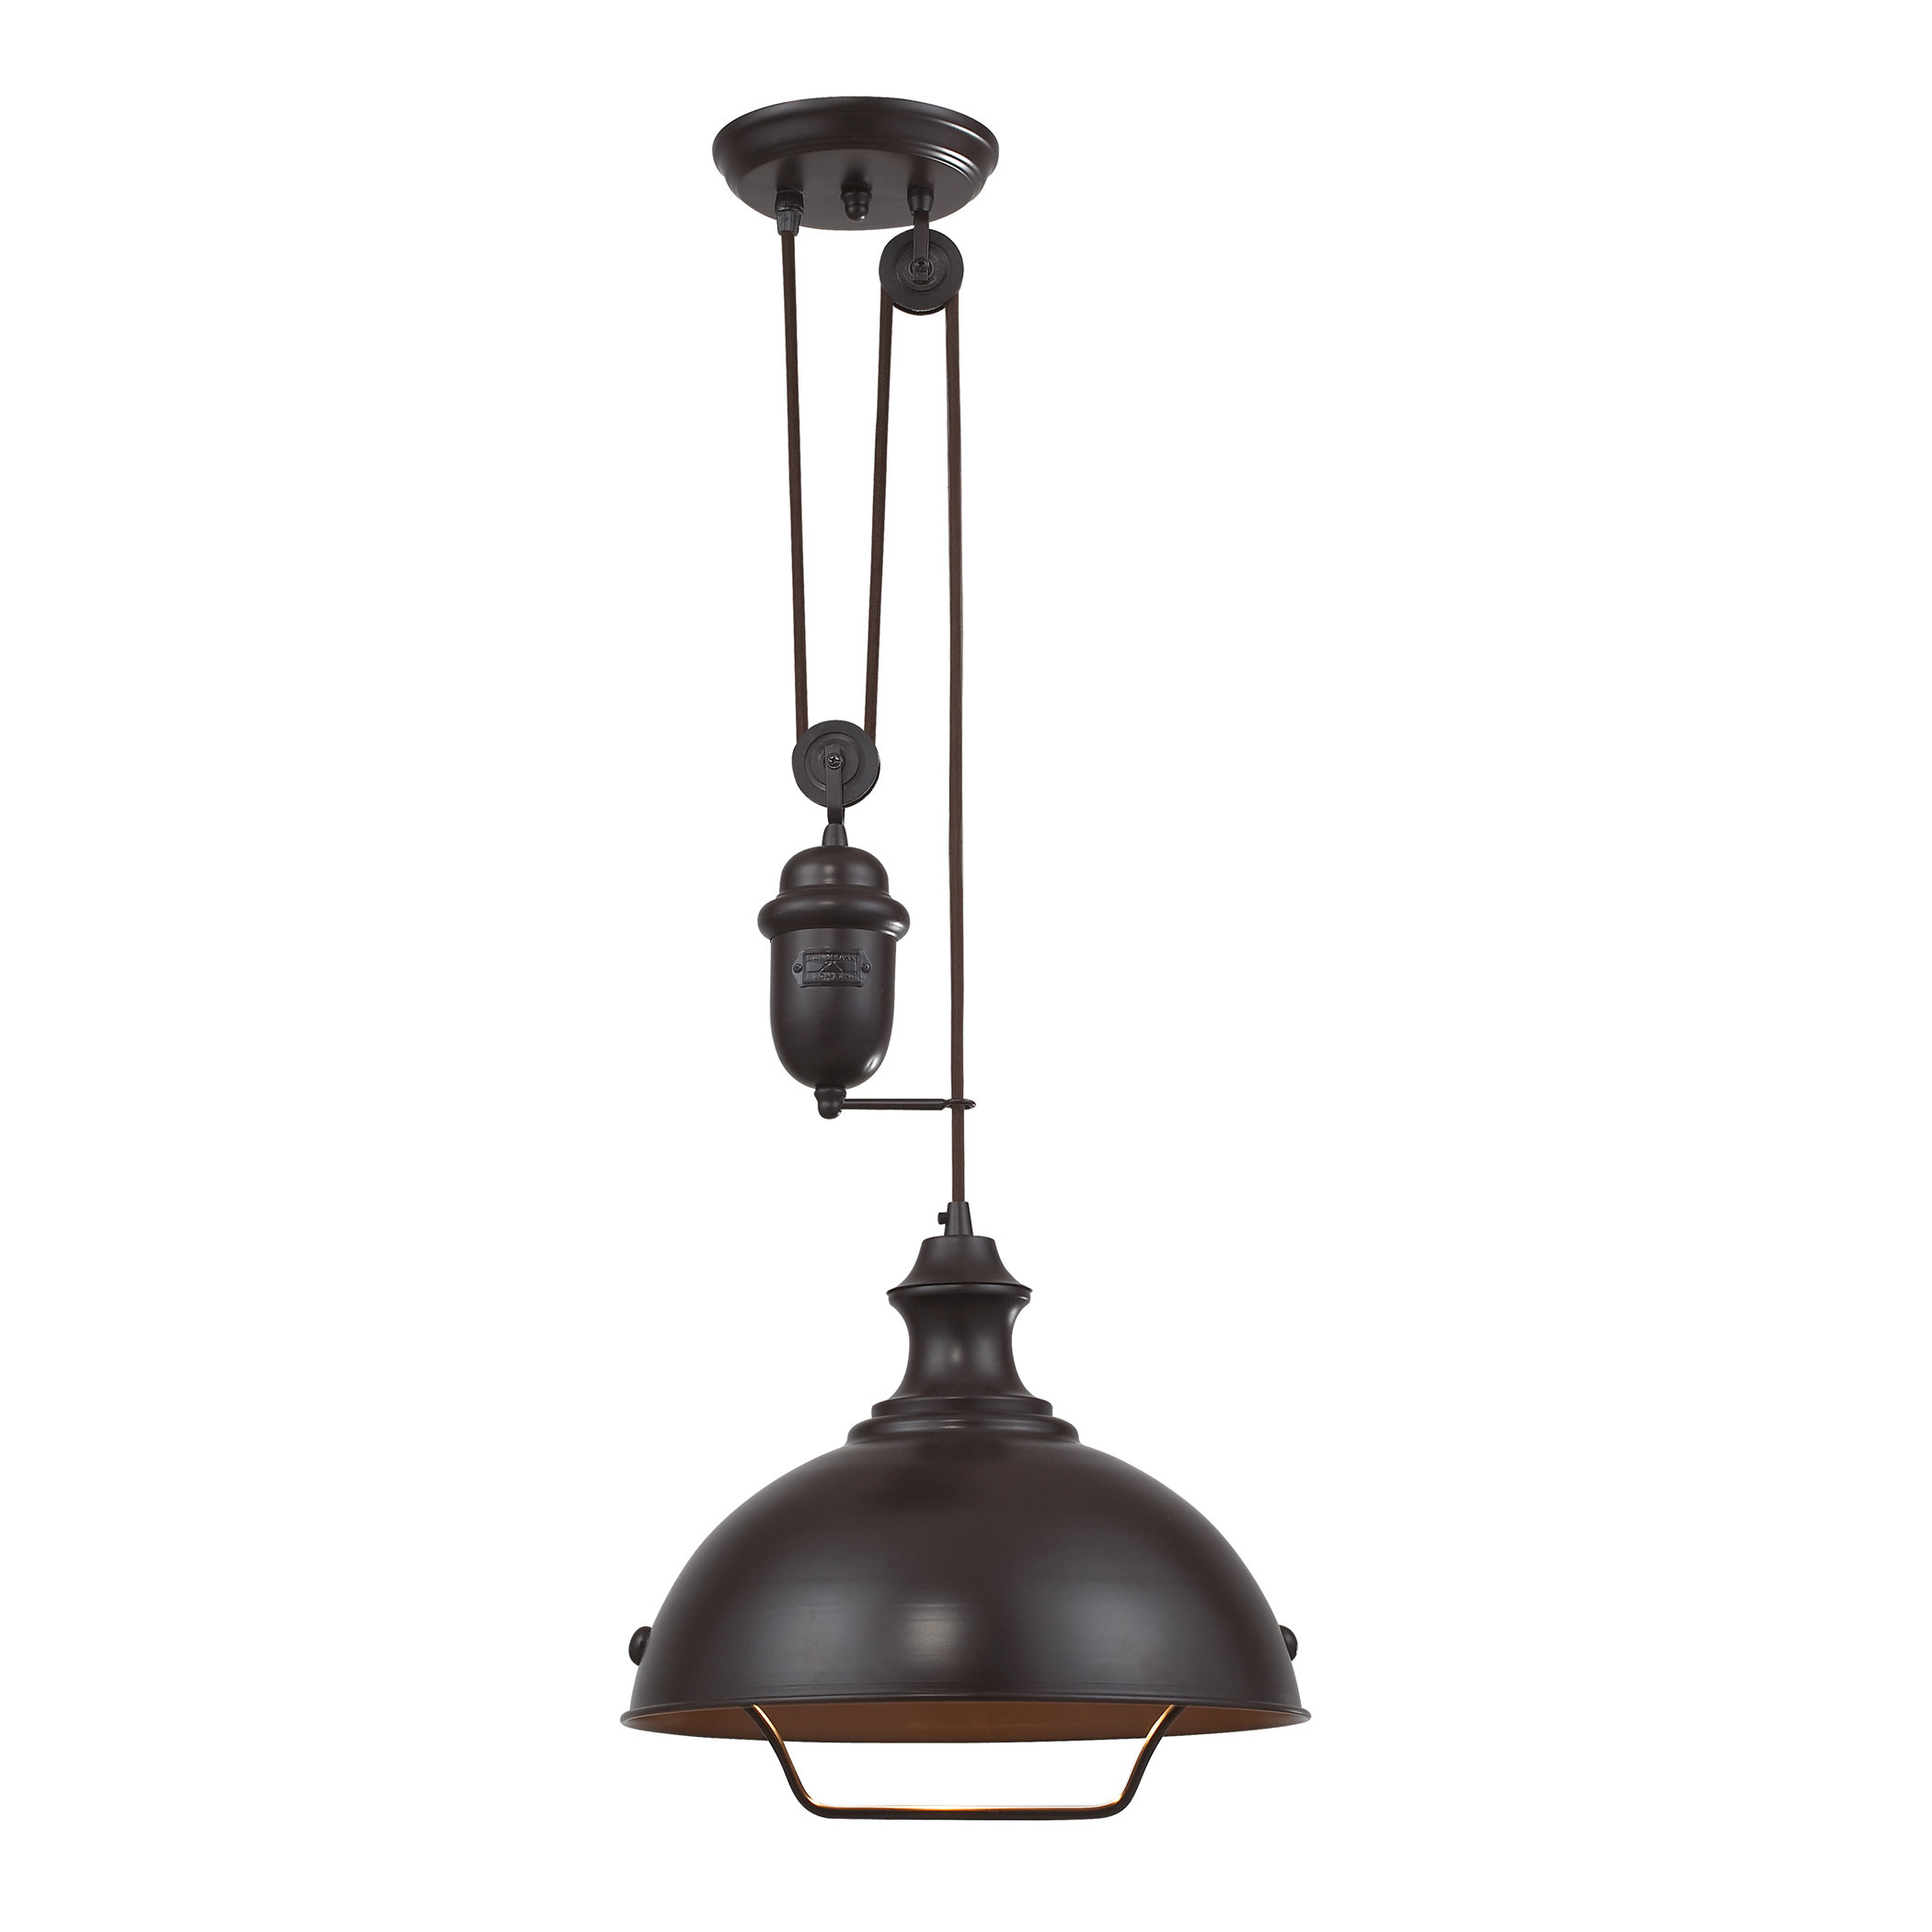 Legrand 1-Light Single Dome Pendant pertaining to 1-Light Single Dome Pendants (Image 17 of 30)